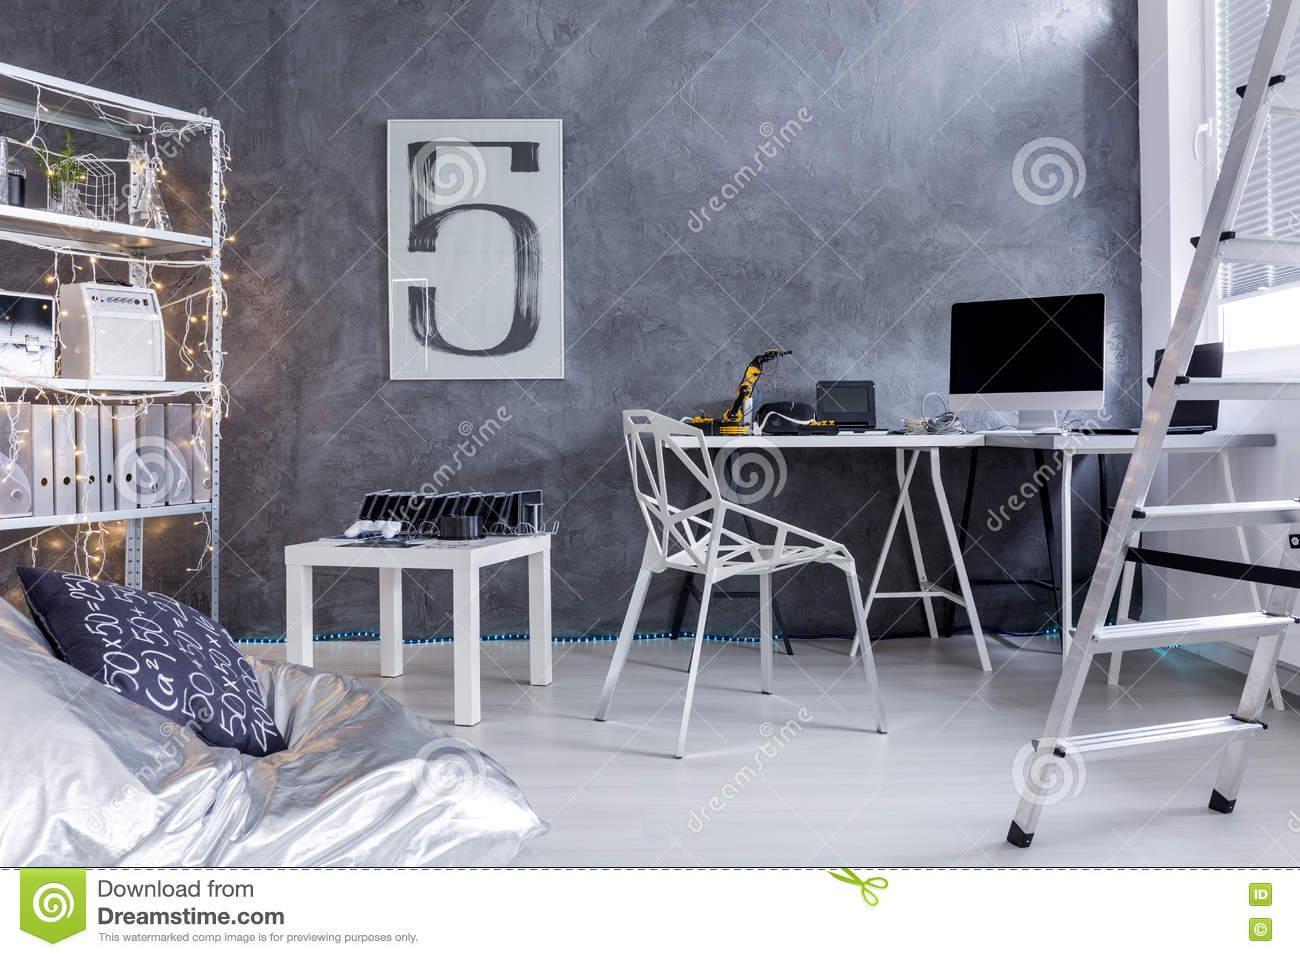 Tremendous Minimalistic Room With Ladder And Bean Bag Chair Stock Image Bralicious Painted Fabric Chair Ideas Braliciousco